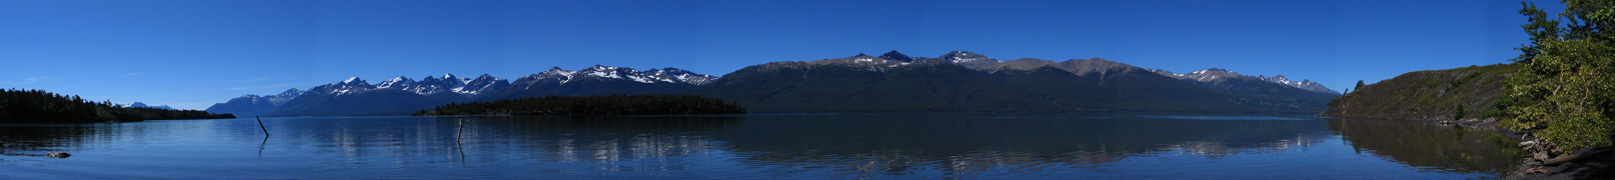 Chilko Lake, British Columbia